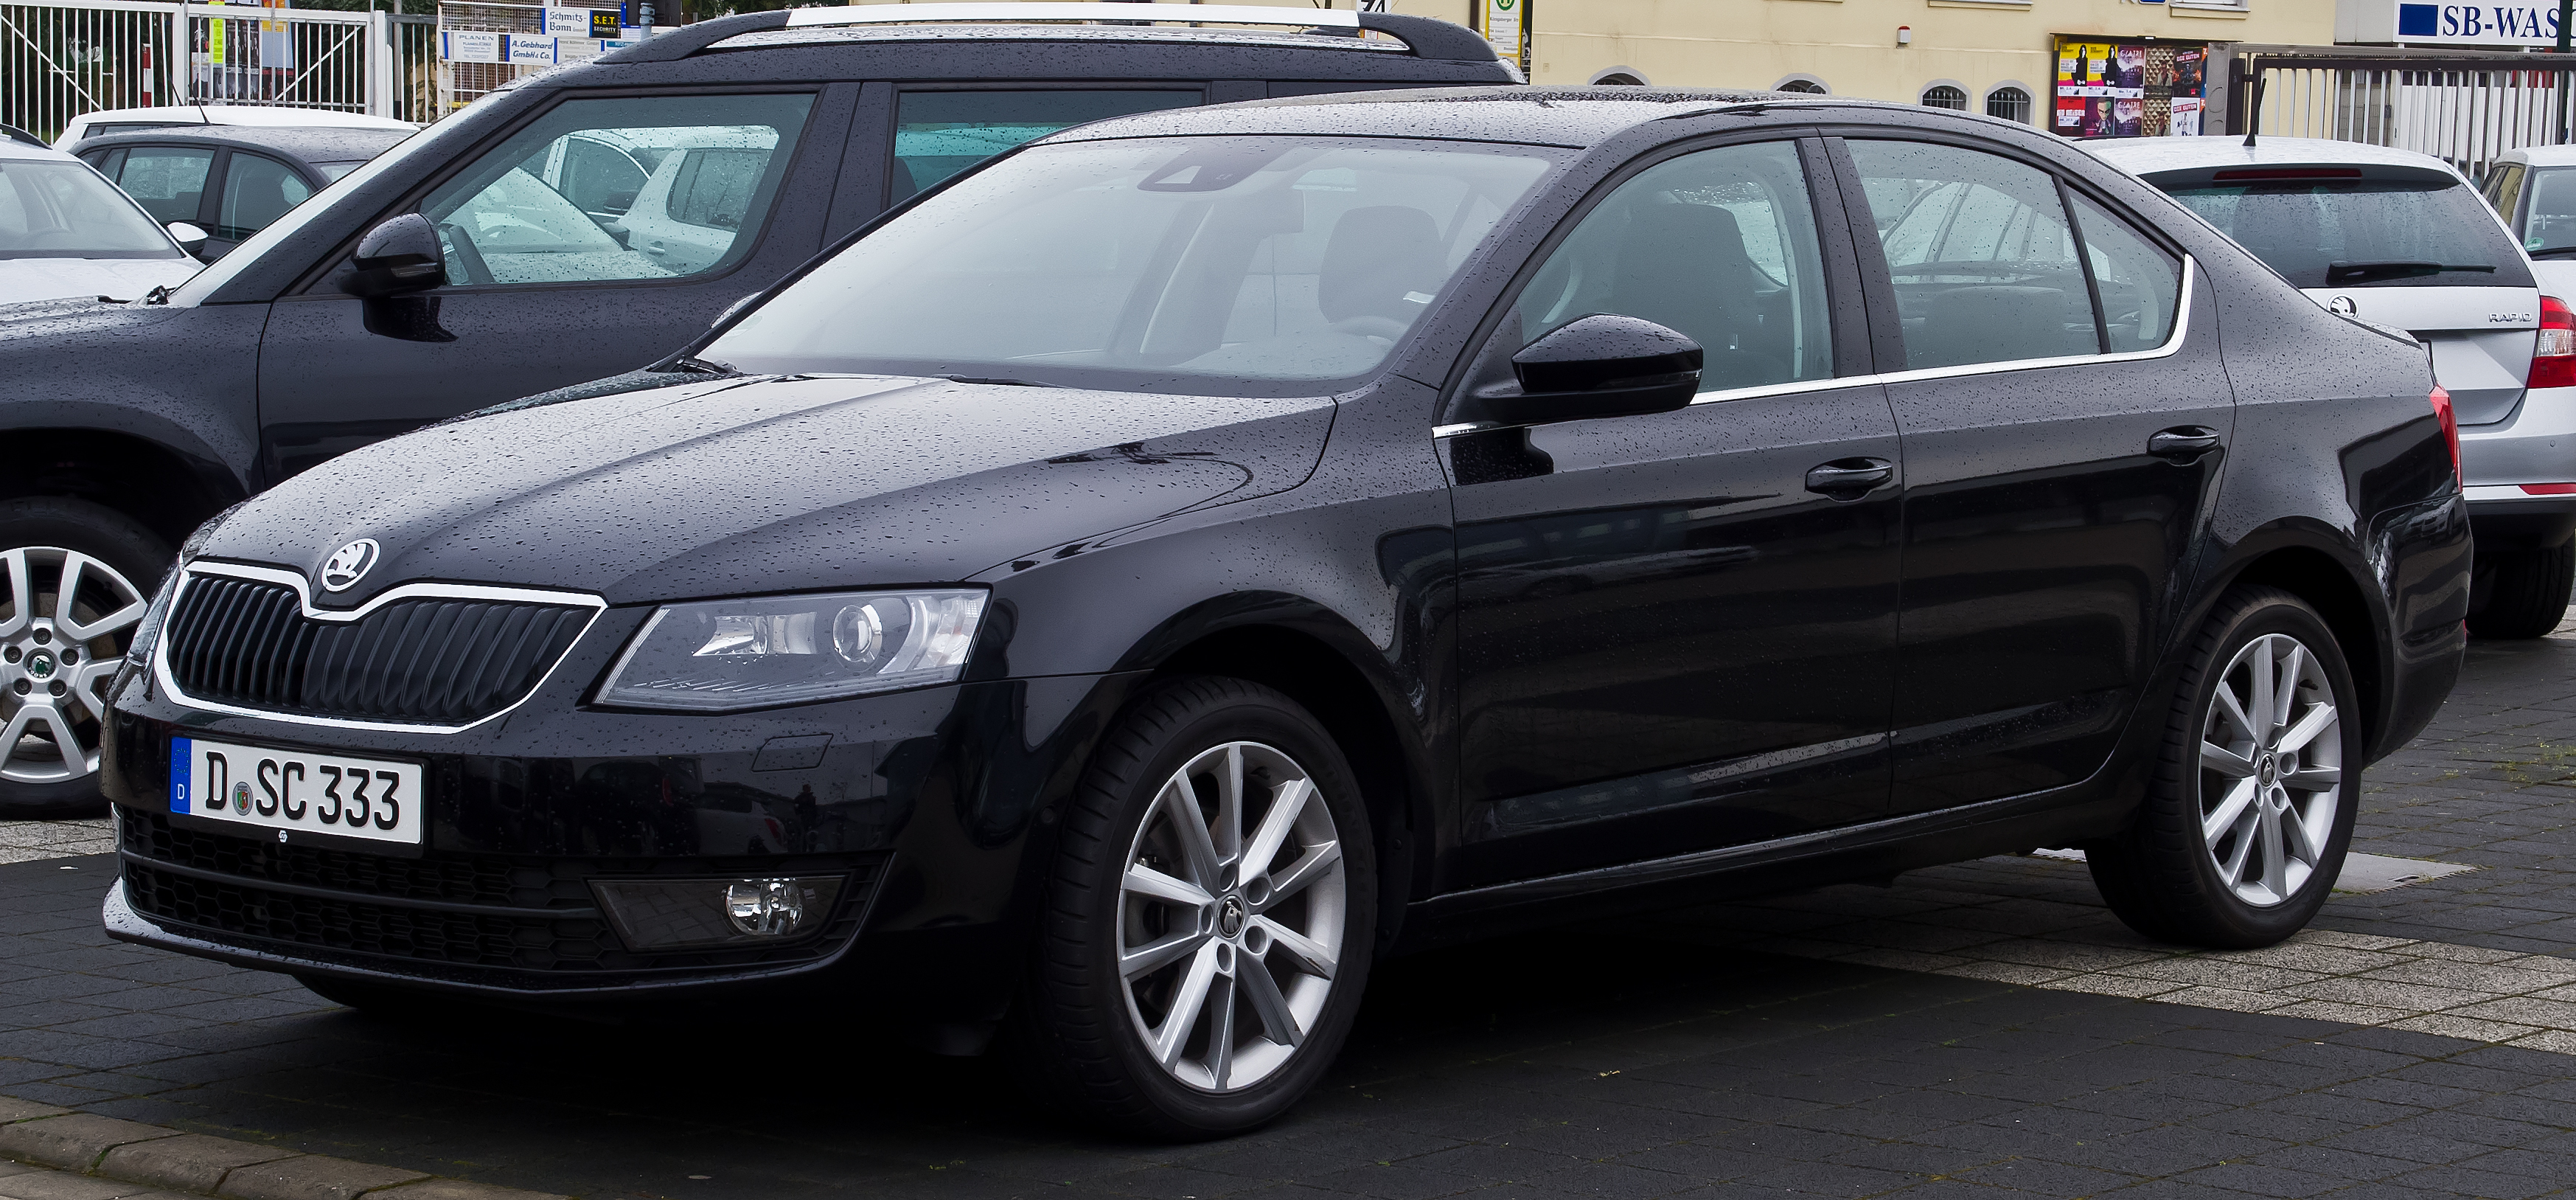 2014 skoda octavia iii pictures information and specs. Black Bedroom Furniture Sets. Home Design Ideas